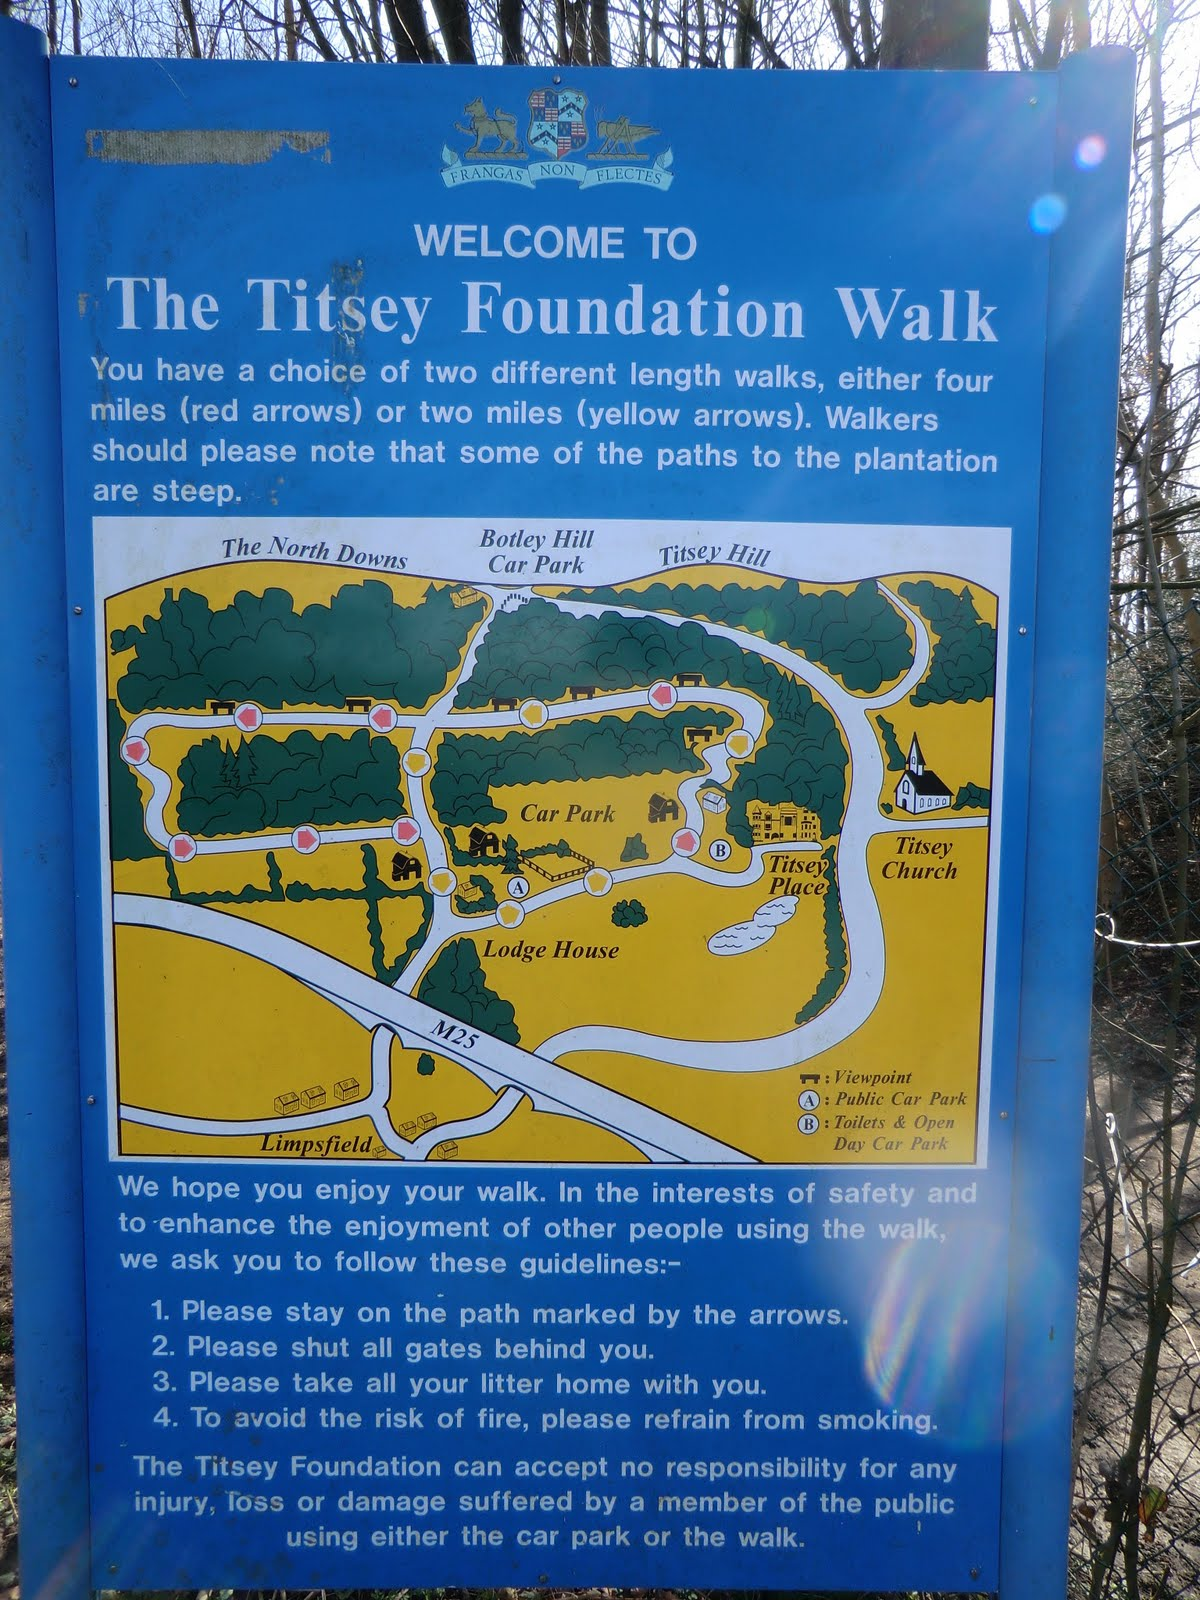 CIMG7044 The Titsey Foundation Walk